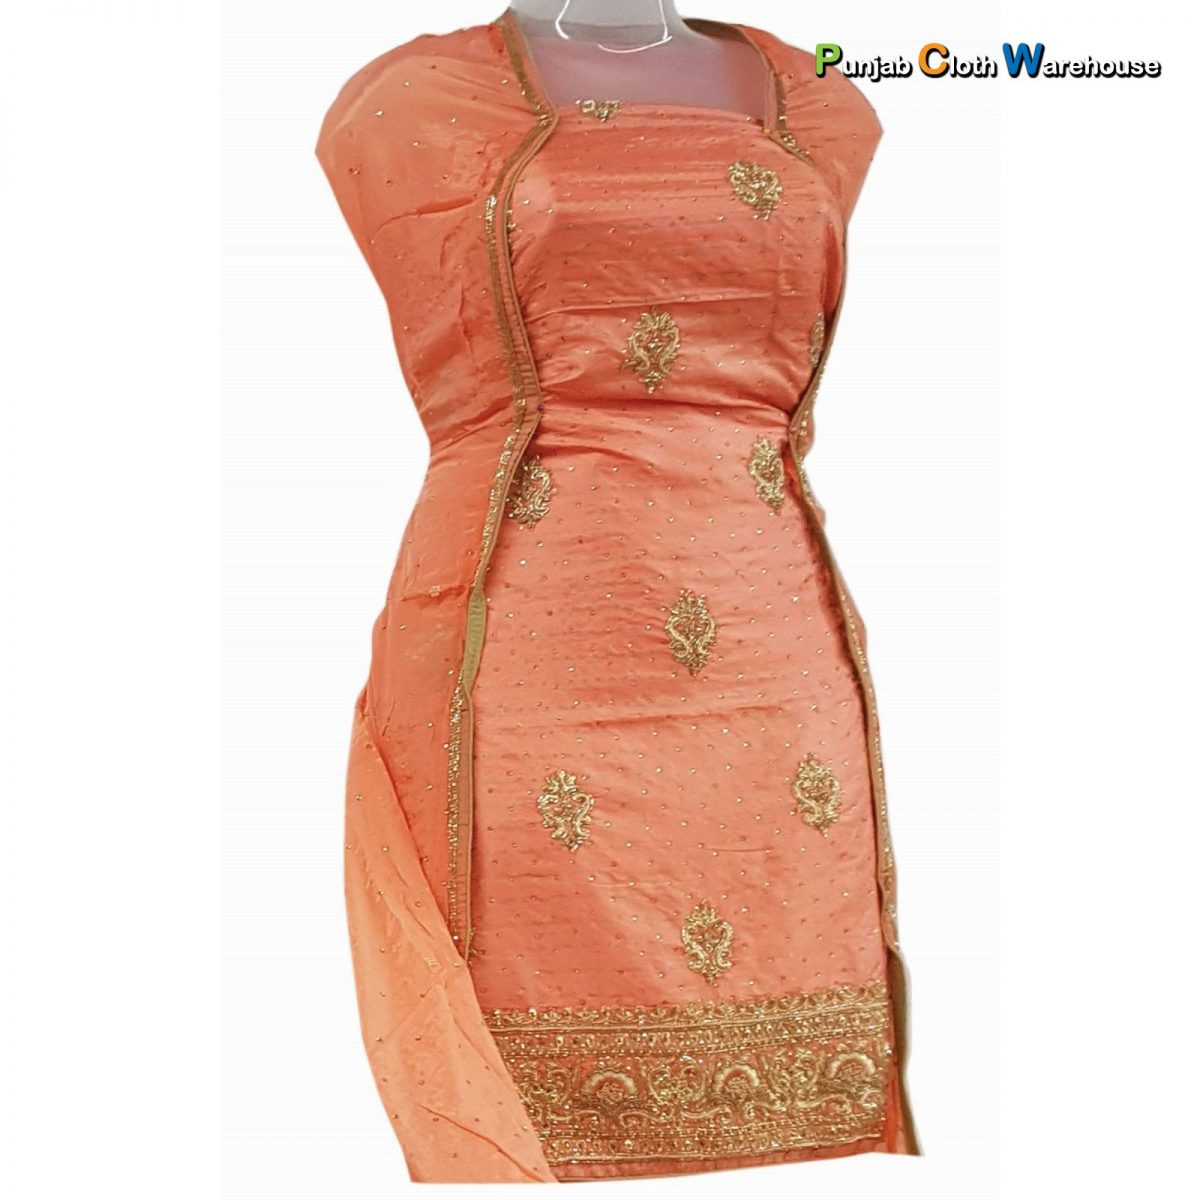 Ladies Suits - Cut Piece - Punjab Cloth Warehouse, Surrey (19)